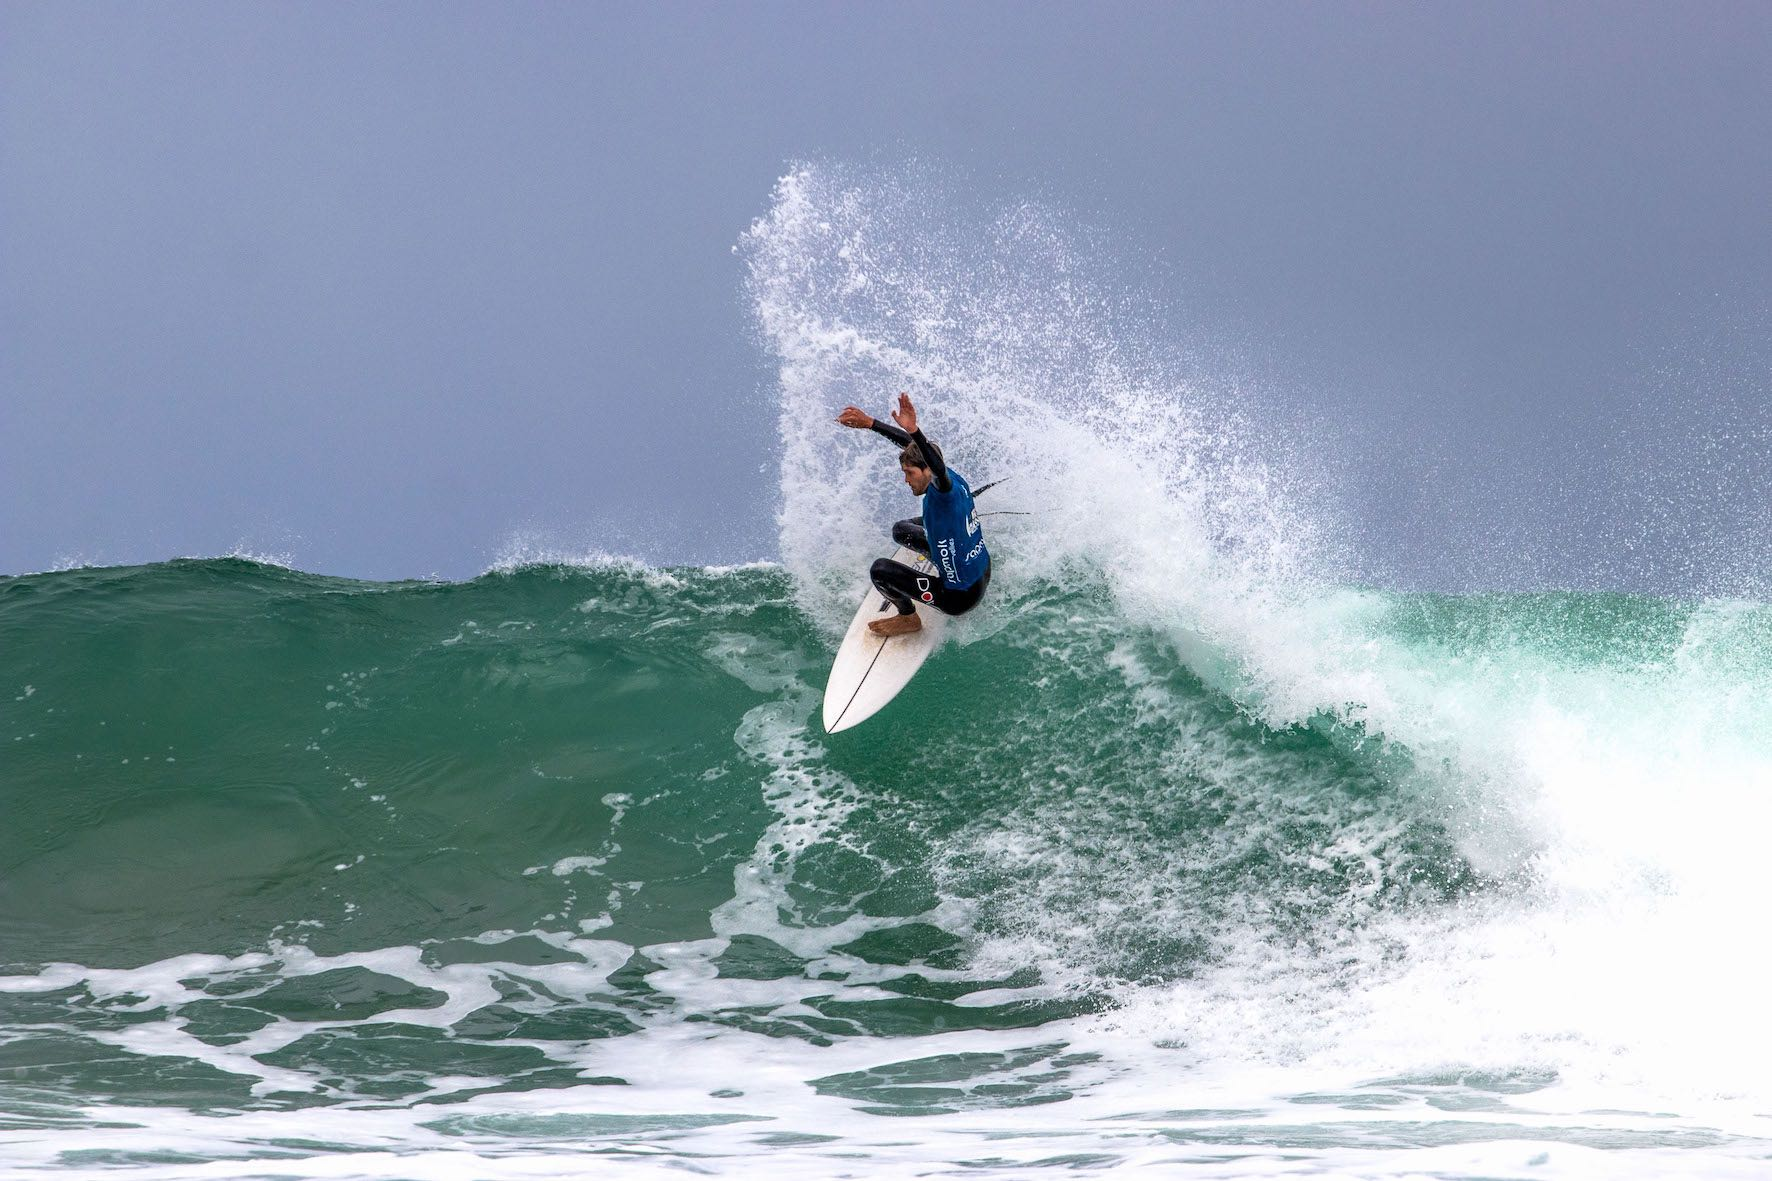 Slade Prestwich surfing in the 2019 Vic Bay Classic